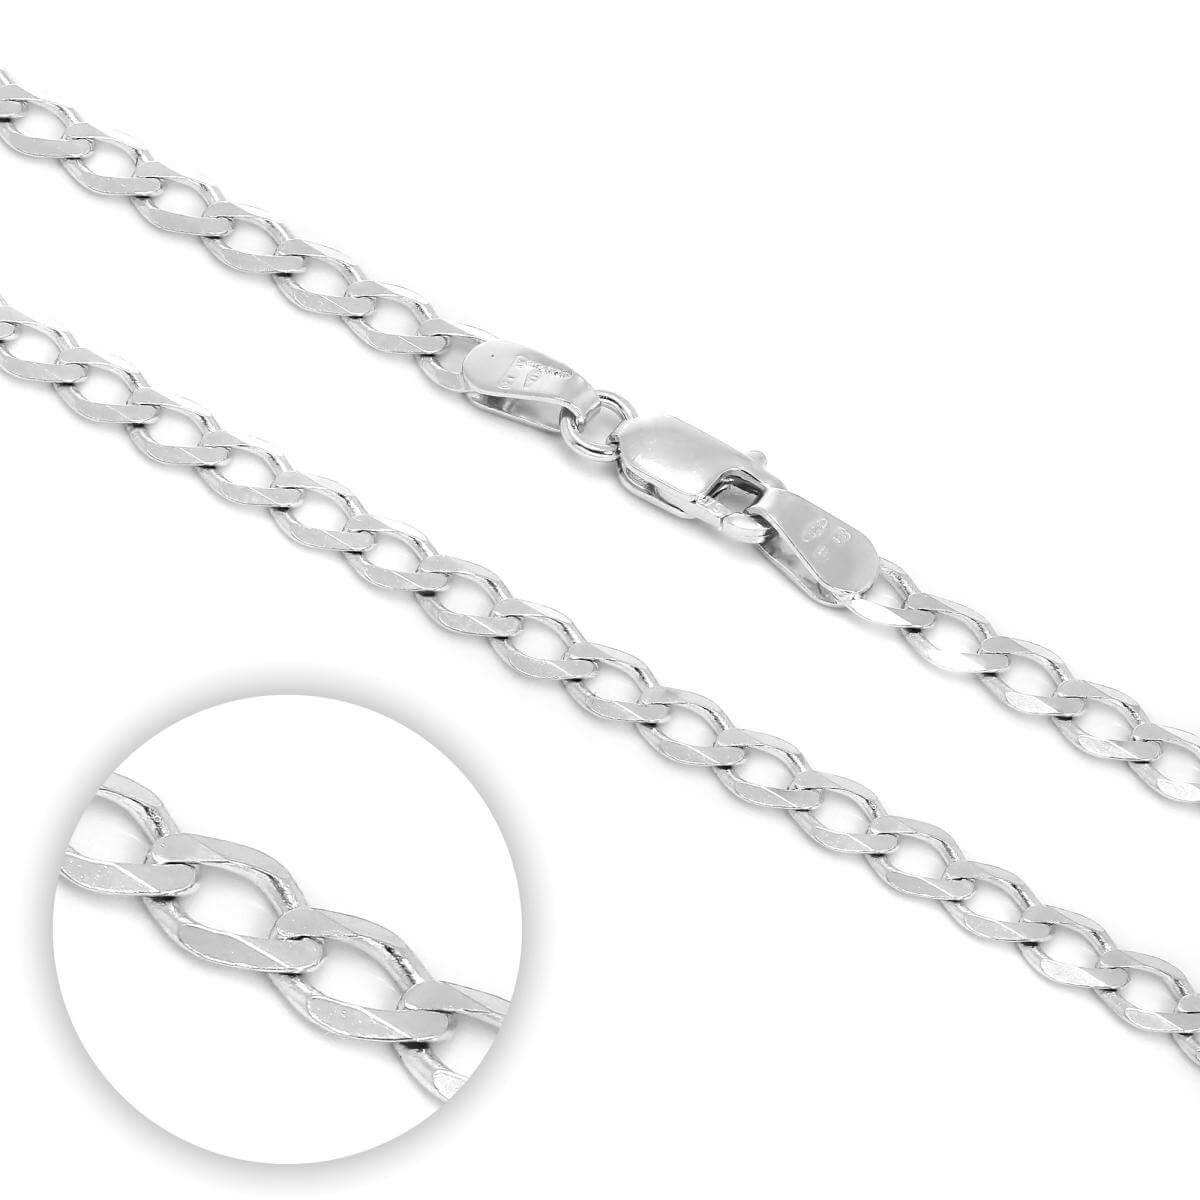 Sterling Silver Thick Curb Chain Bracelet & Necklace 7 - 28 Inches